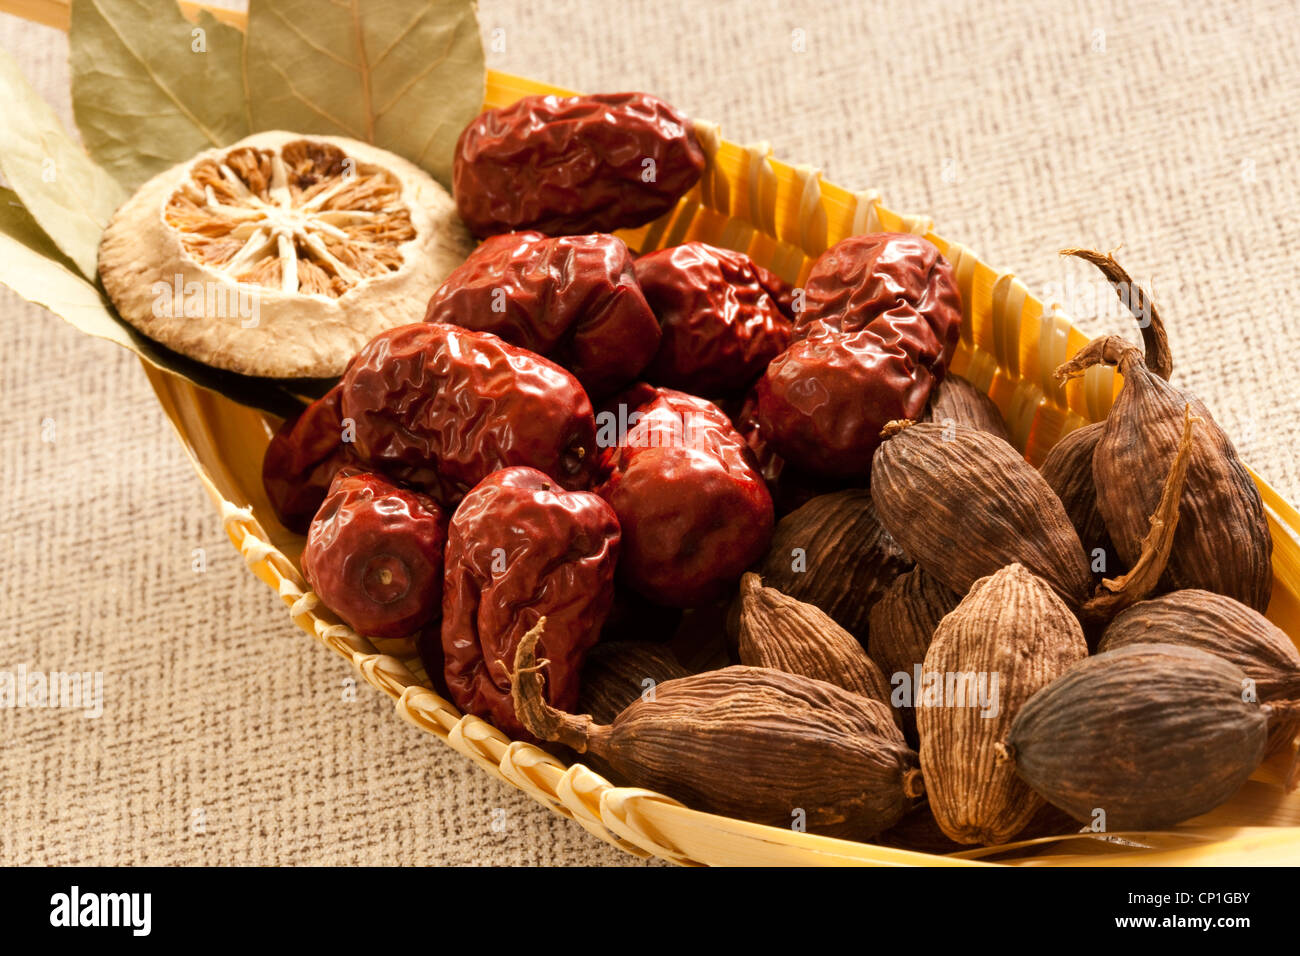 Close-up of different spices - Stock Image